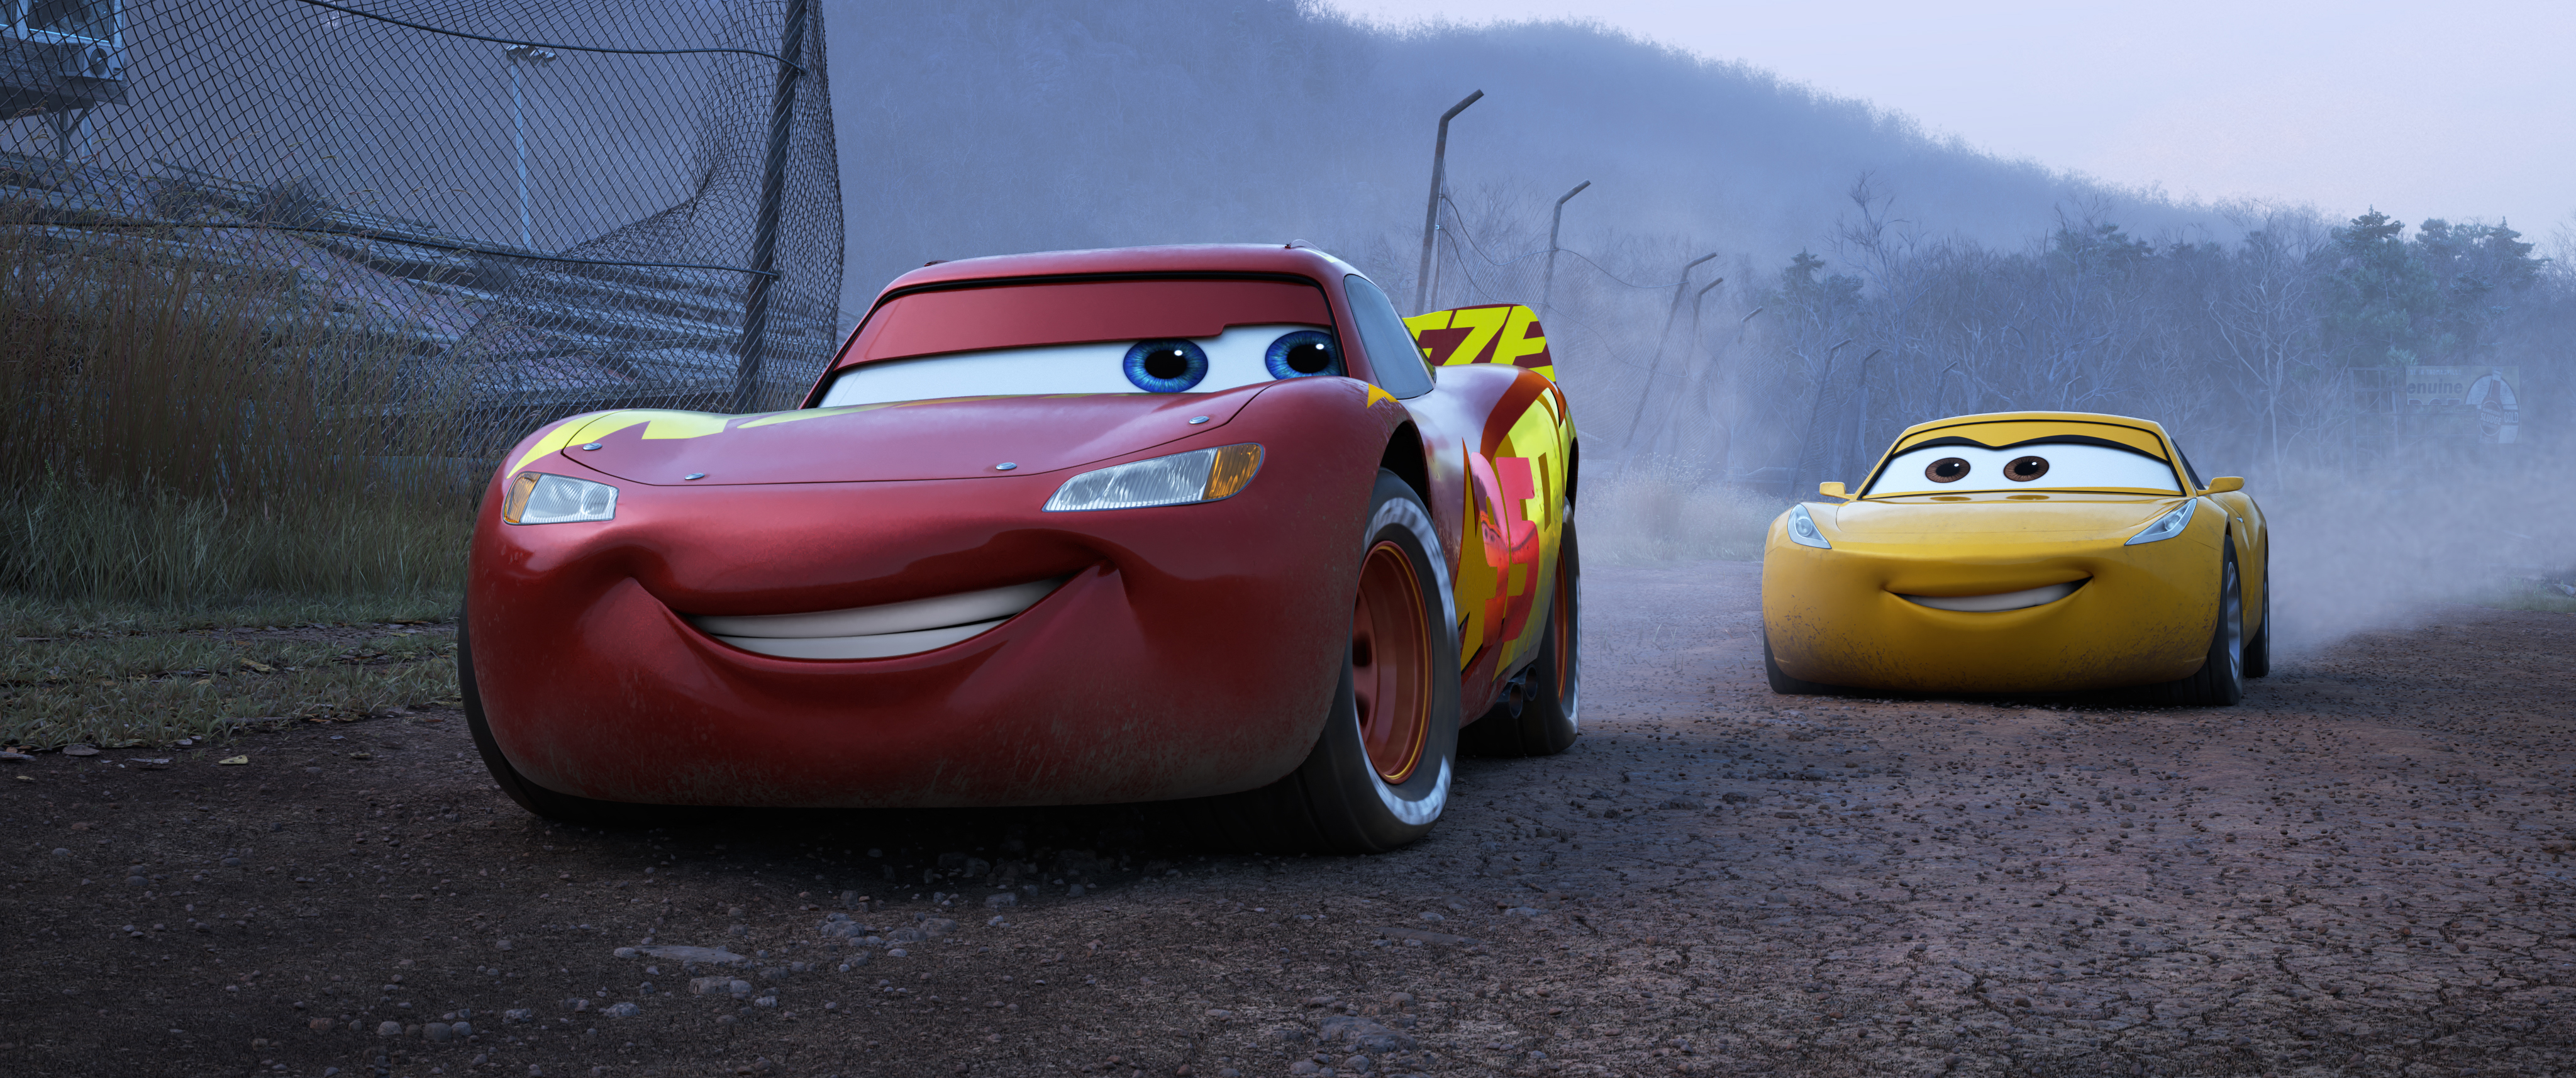 Cars 3 Footage Reaction: Pixar Screened Around 50 Minutes of the ...